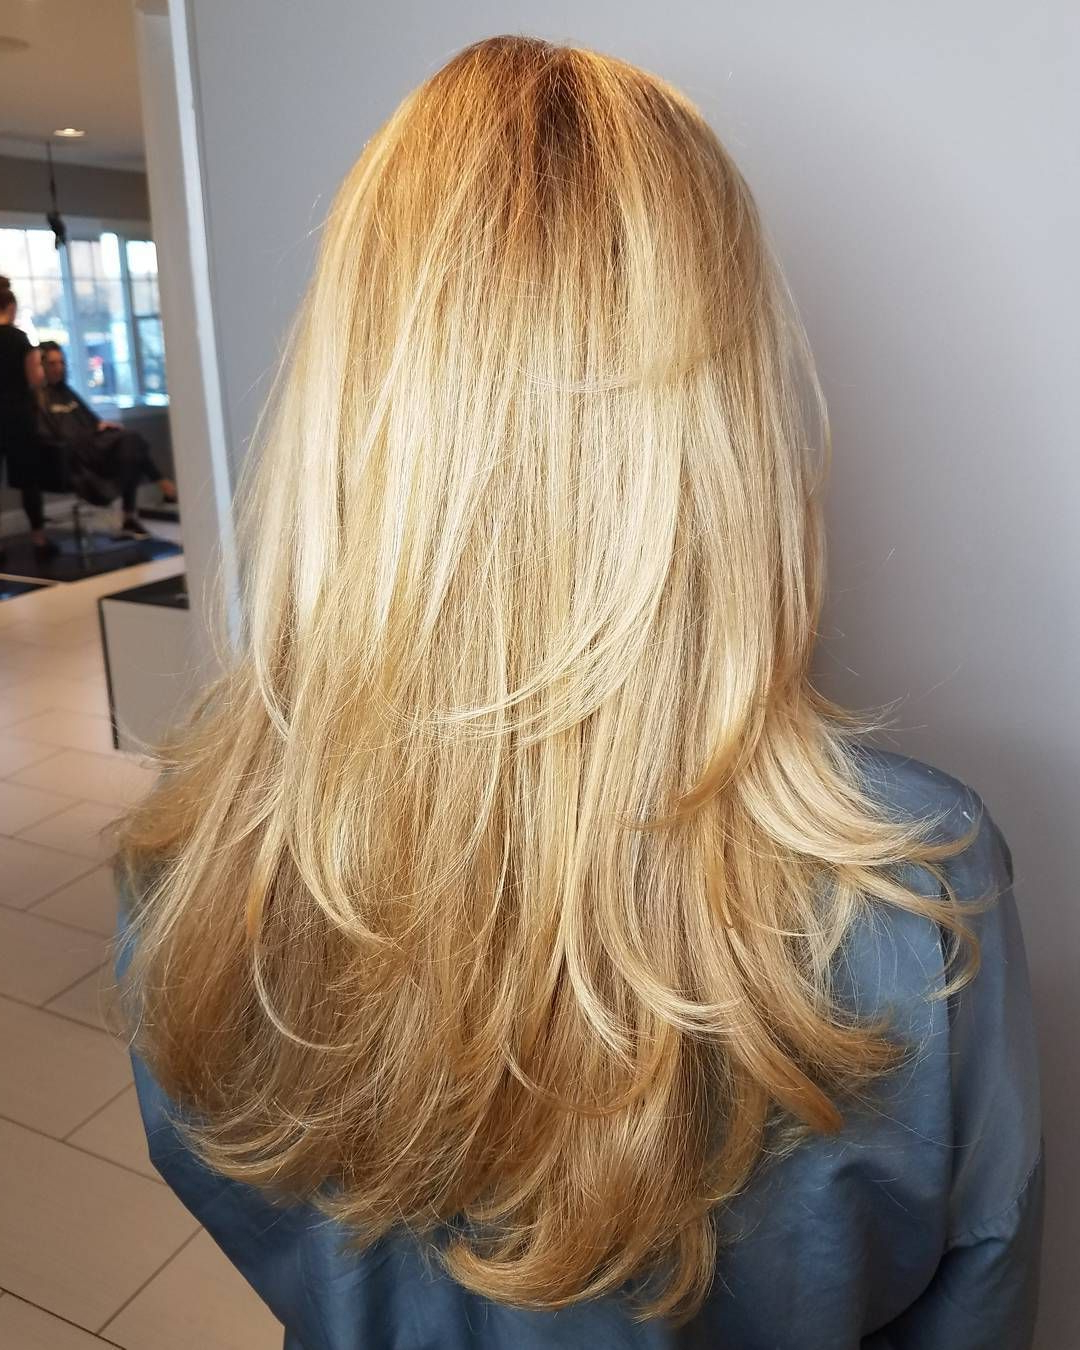 Beauty Regarding Recent Long Feathered Strawberry Blonde Haircuts (View 10 of 20)